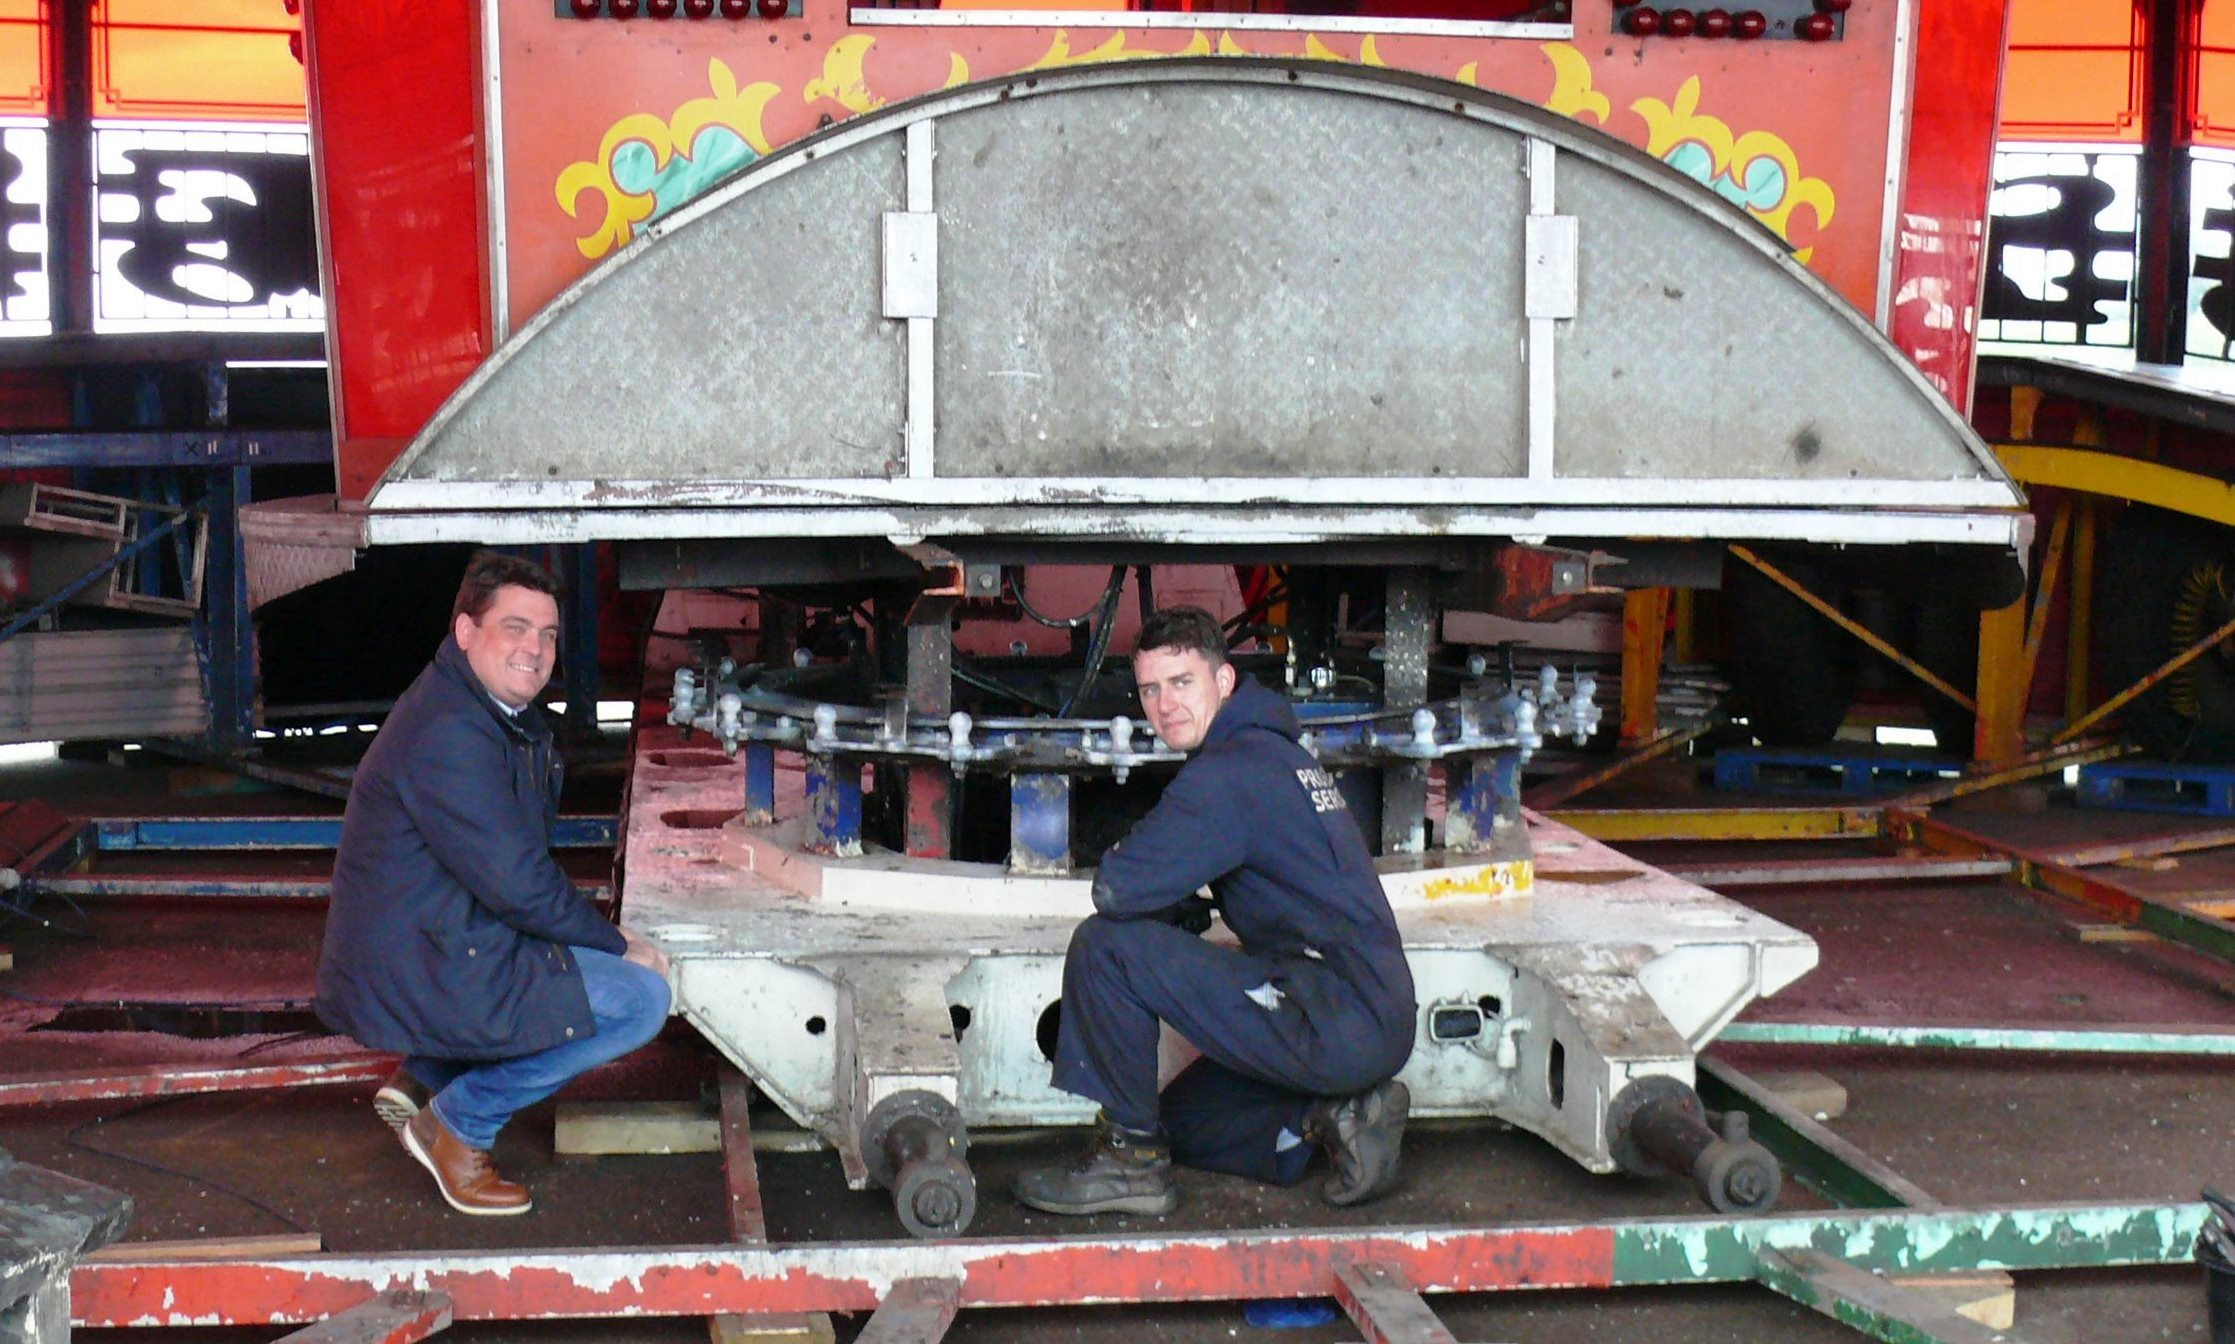 Stripped down - Pier director Billy Ball and engineer Alex Lester with the stripped down Waltzer ready for inspection